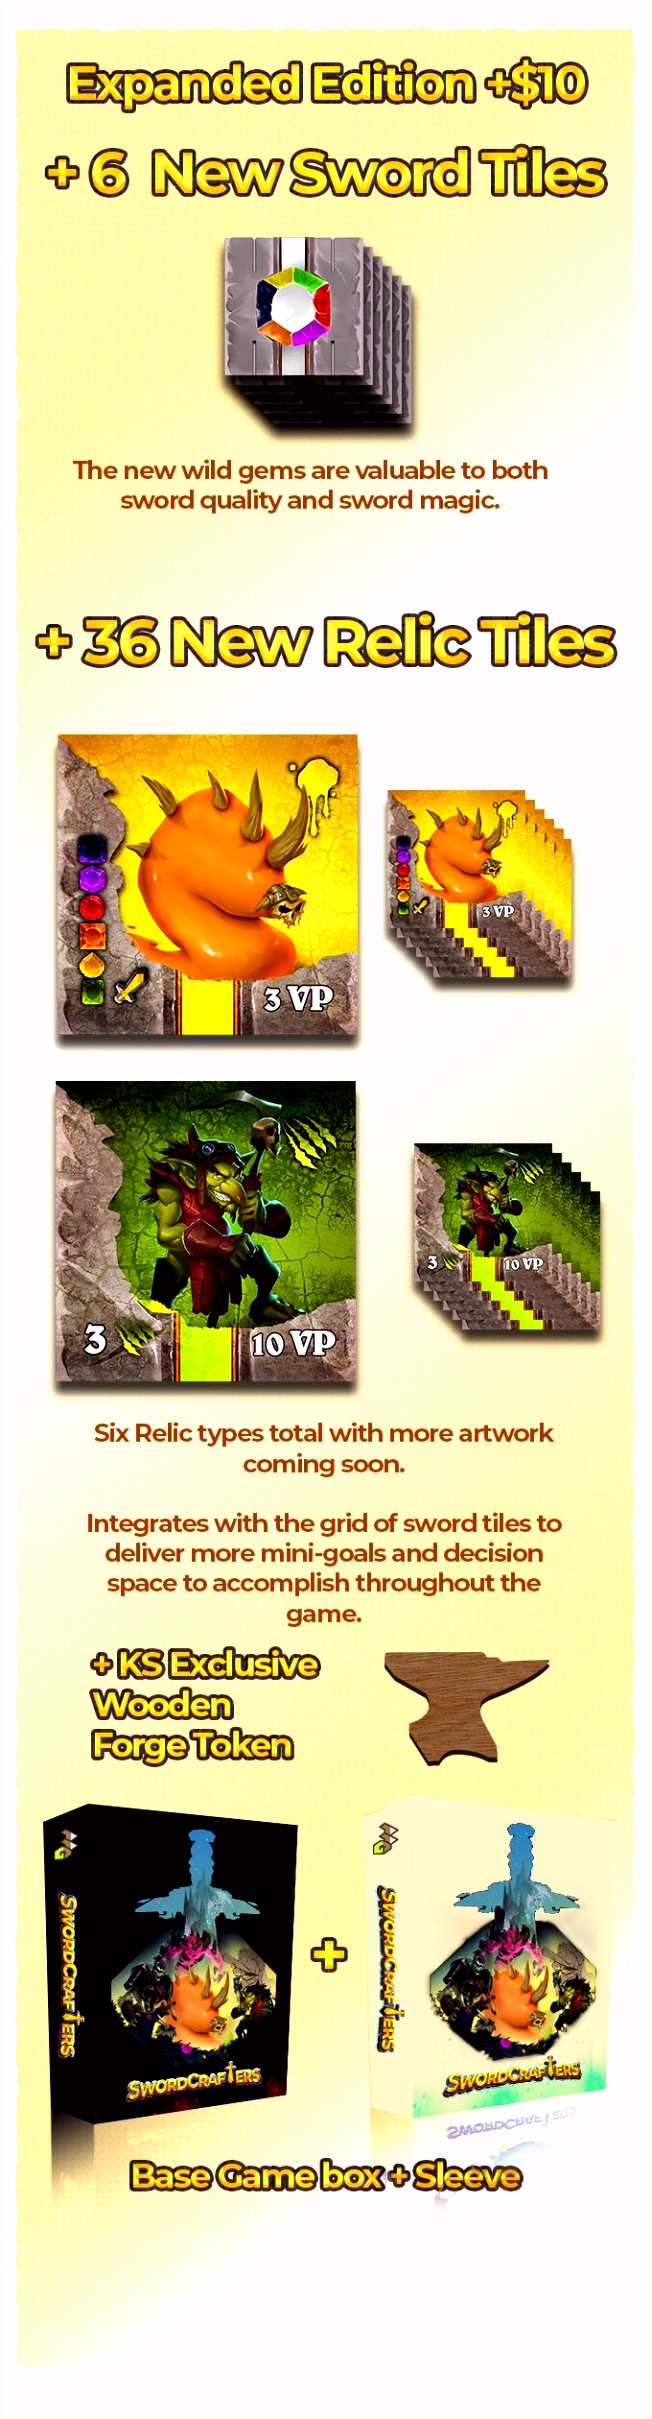 Swordcrafters Craft 2D game pieces into a 3D sword by Adam